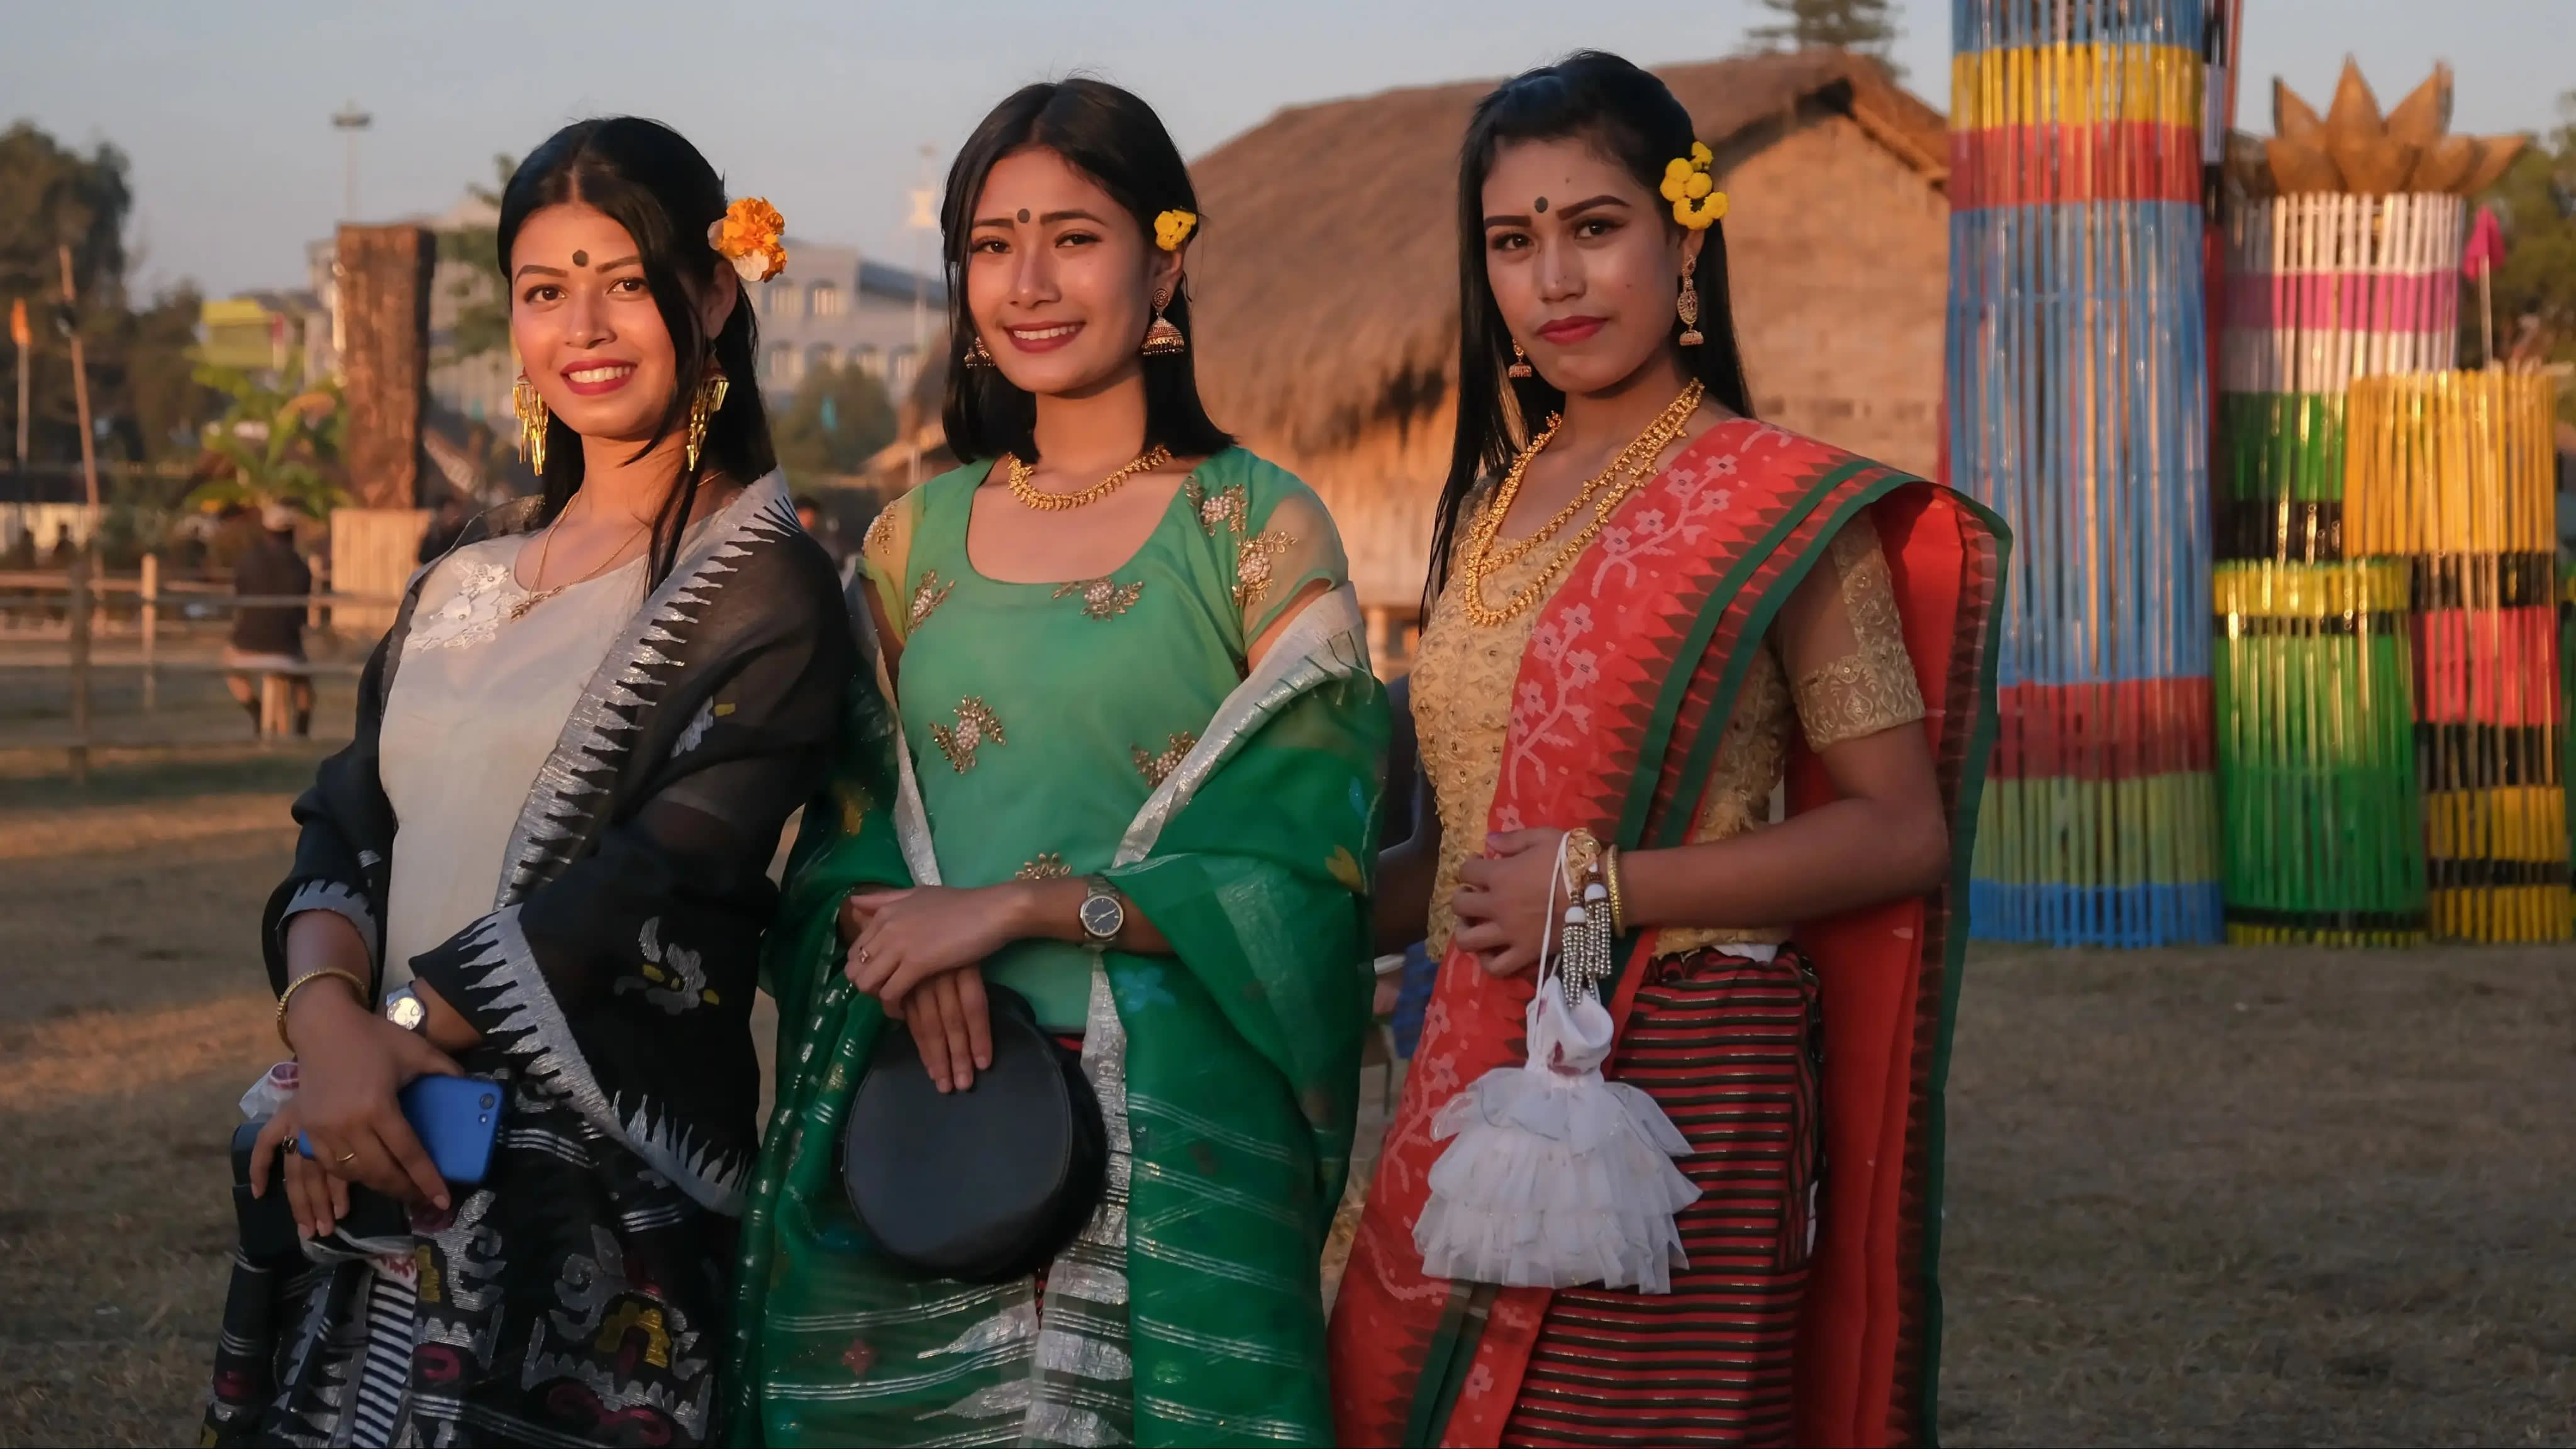 India's Manipur shows new face to the world - Nikkei Asian Review